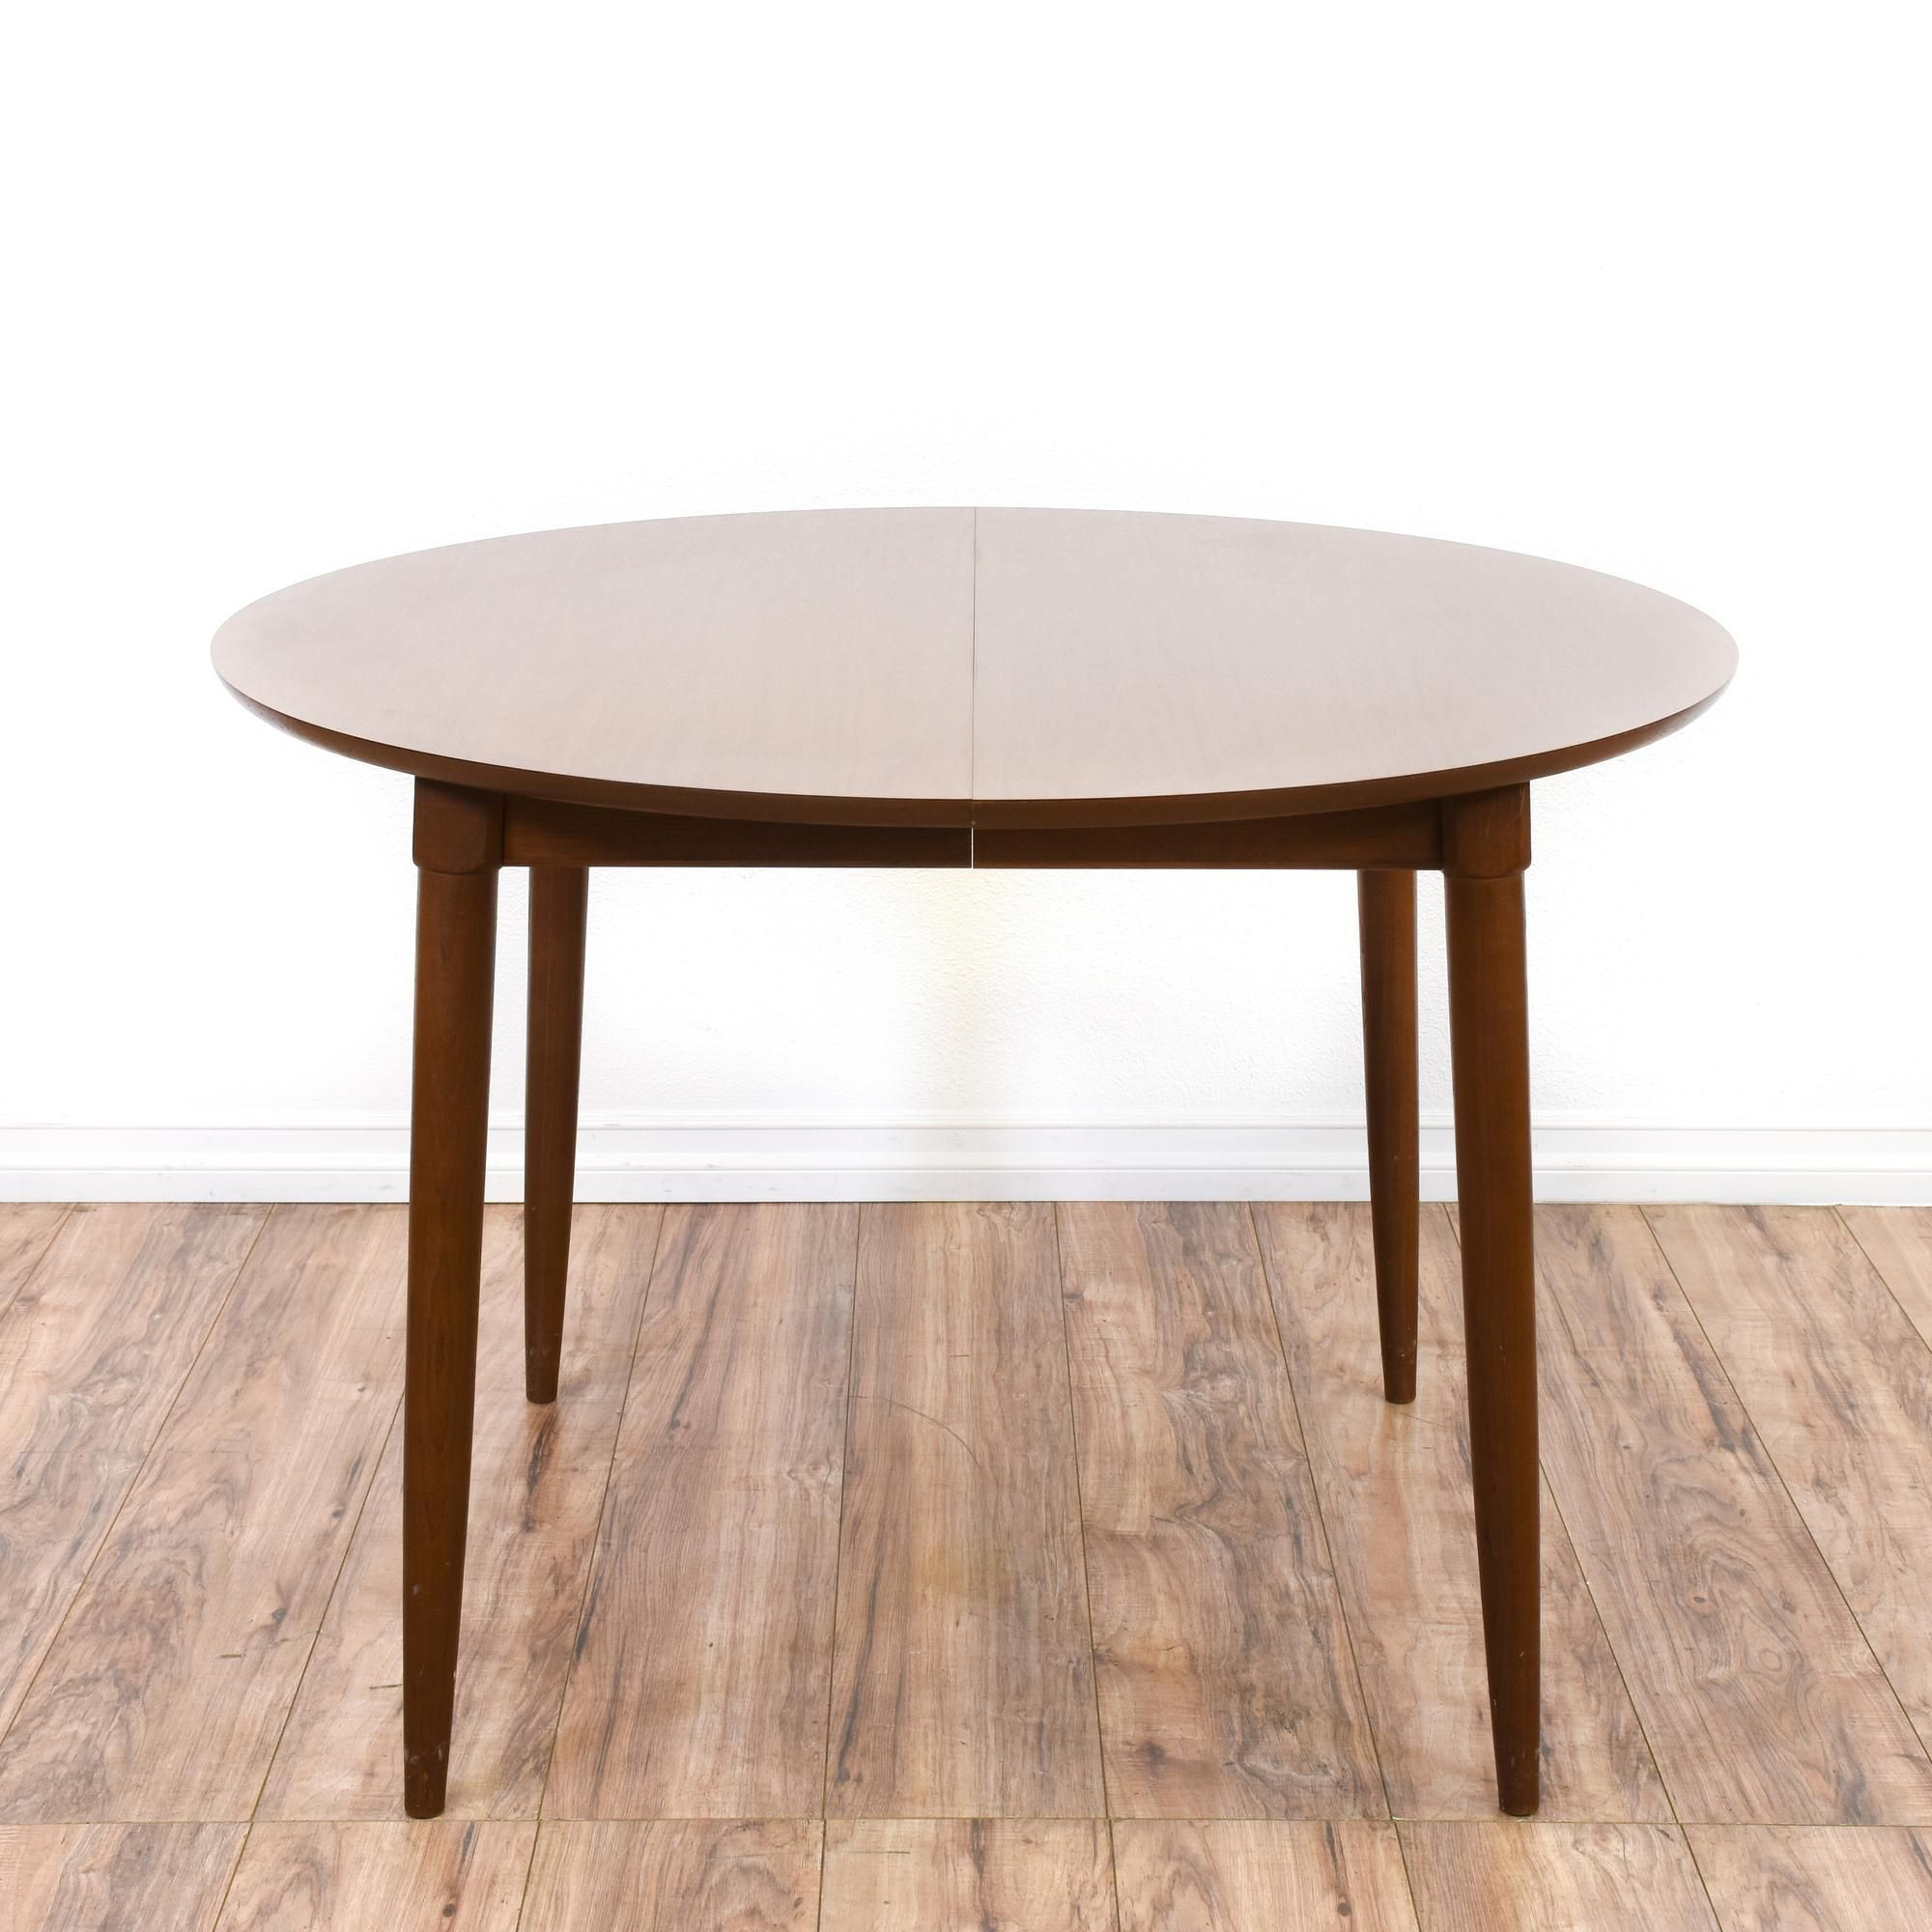 Round Mid Century Modern Dining Table W Leaf This Dining Table Is - Mid century modern round kitchen table